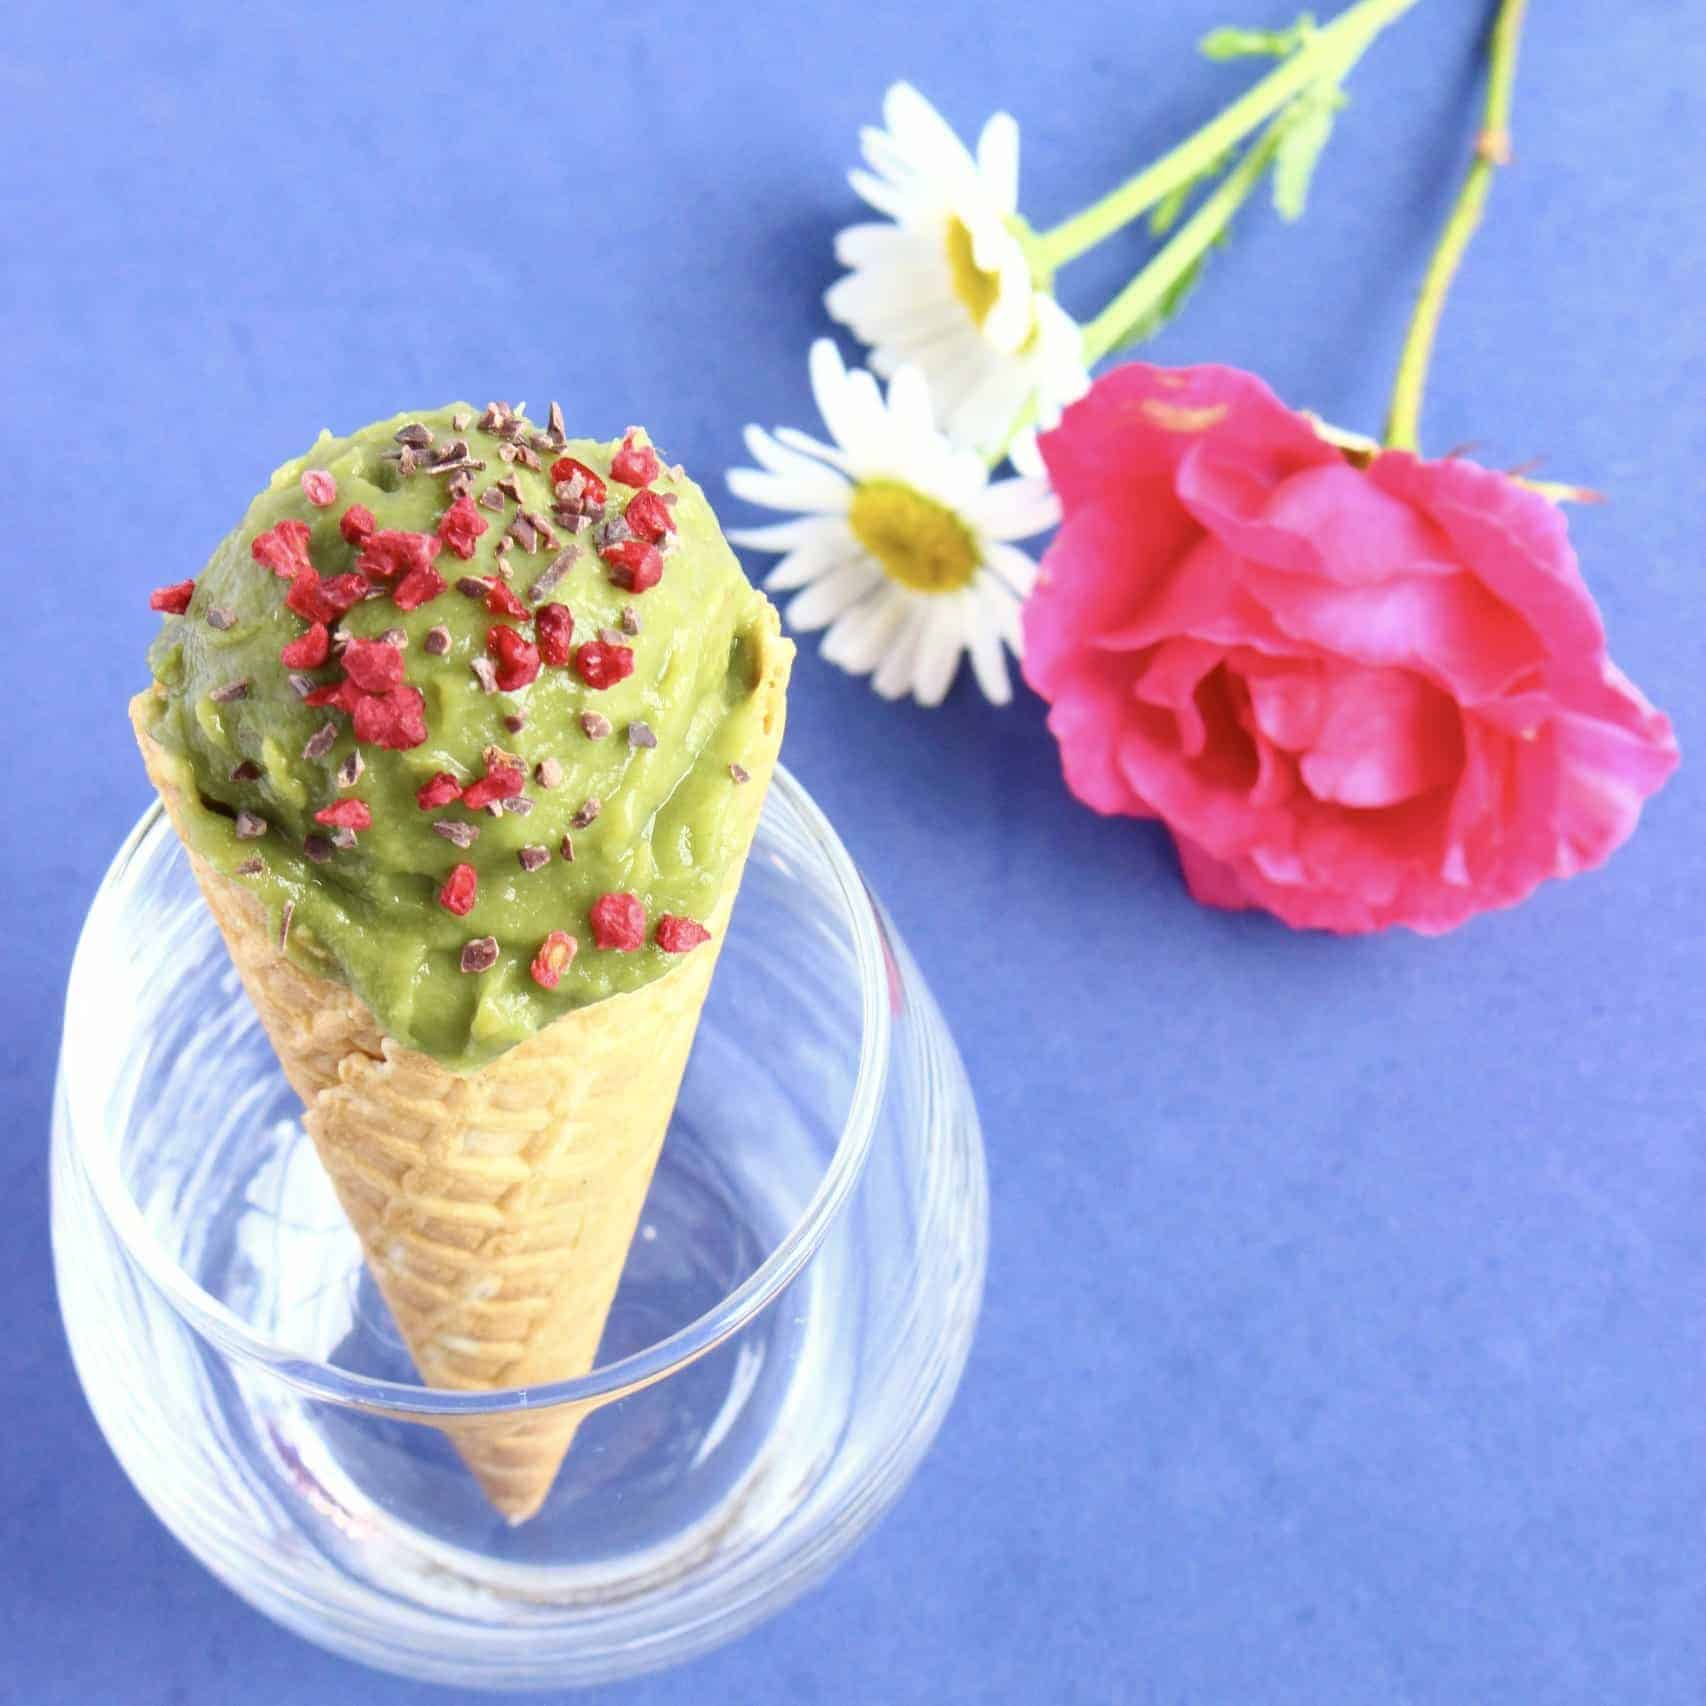 Vegan Matcha Sweet Potato Ice Cream